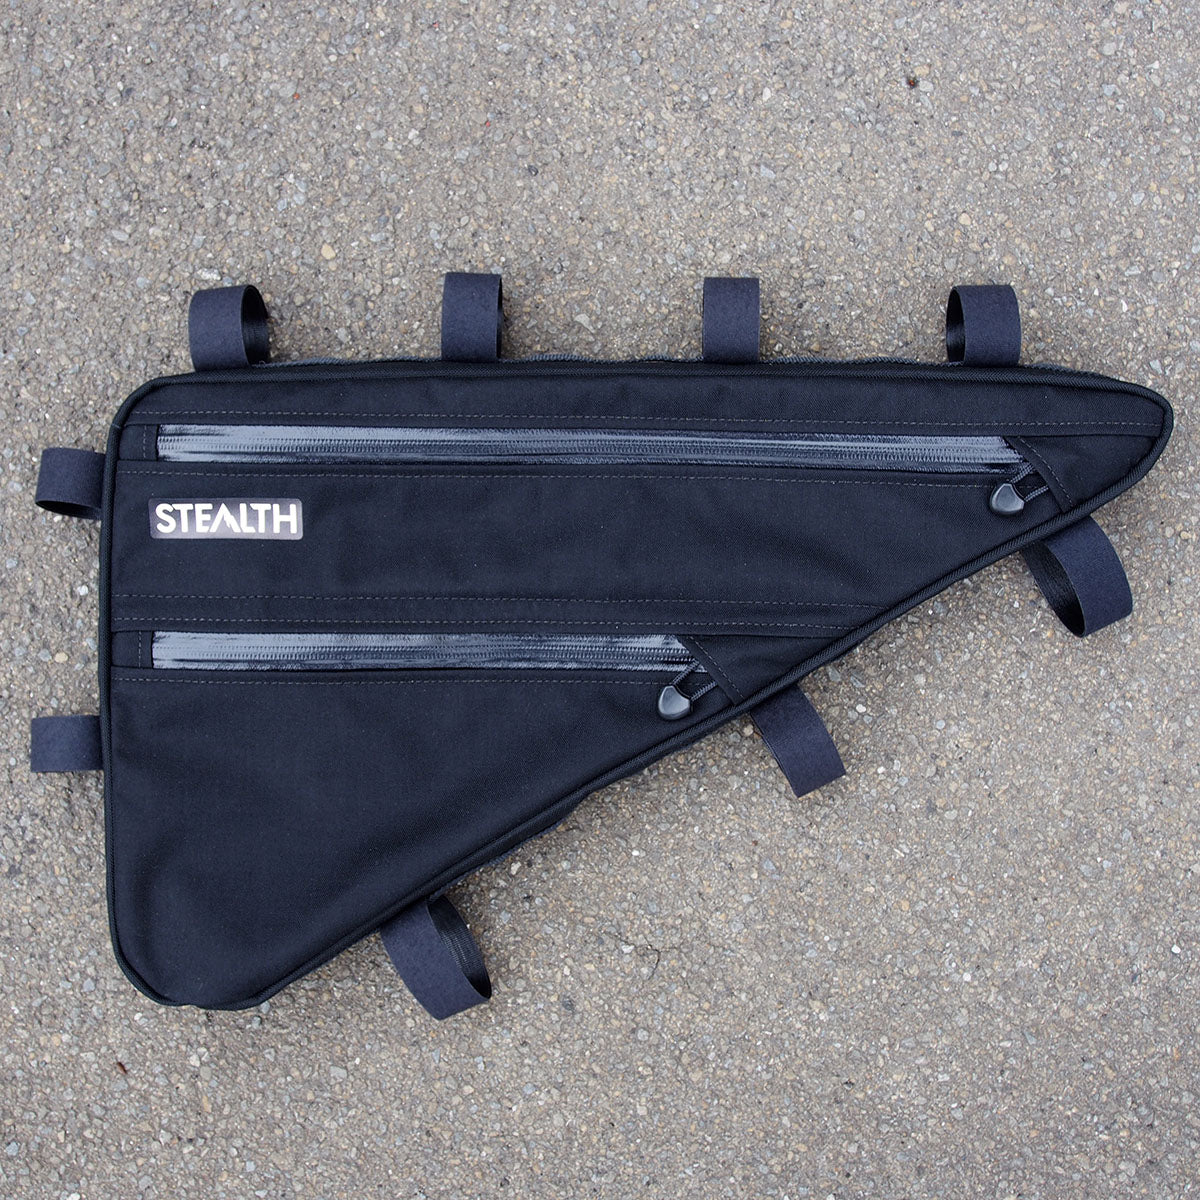 Black frame bag for MTB